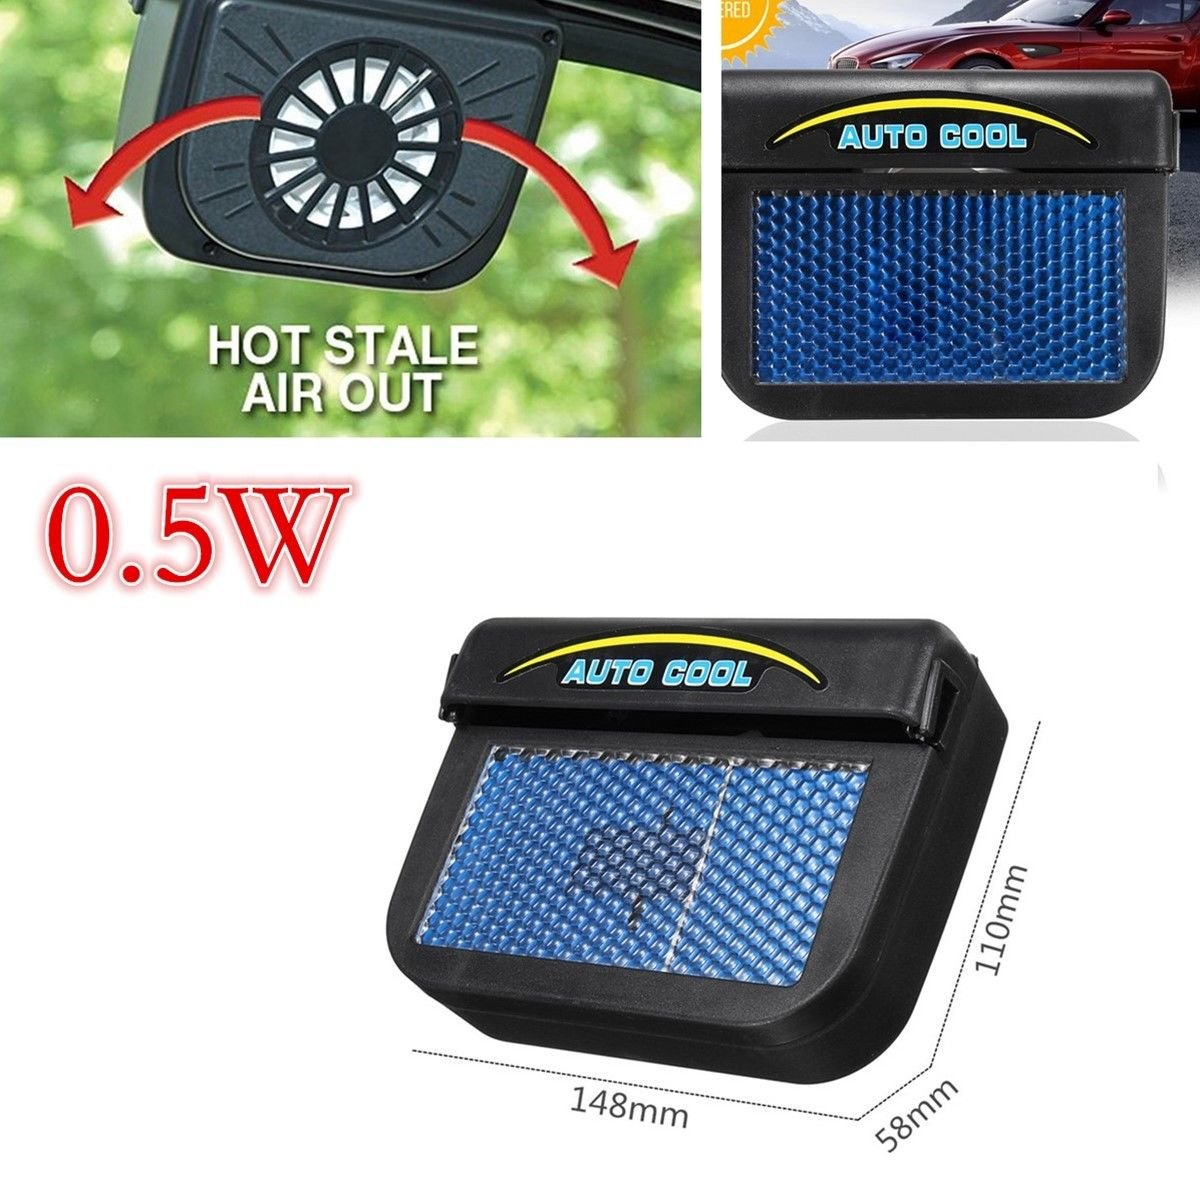 Qiyun Universal Popular 0.5W Solar Powered Auto Air Vent Cooling Fan, Car Ventilation Cooler Radiator with Rubber Strip